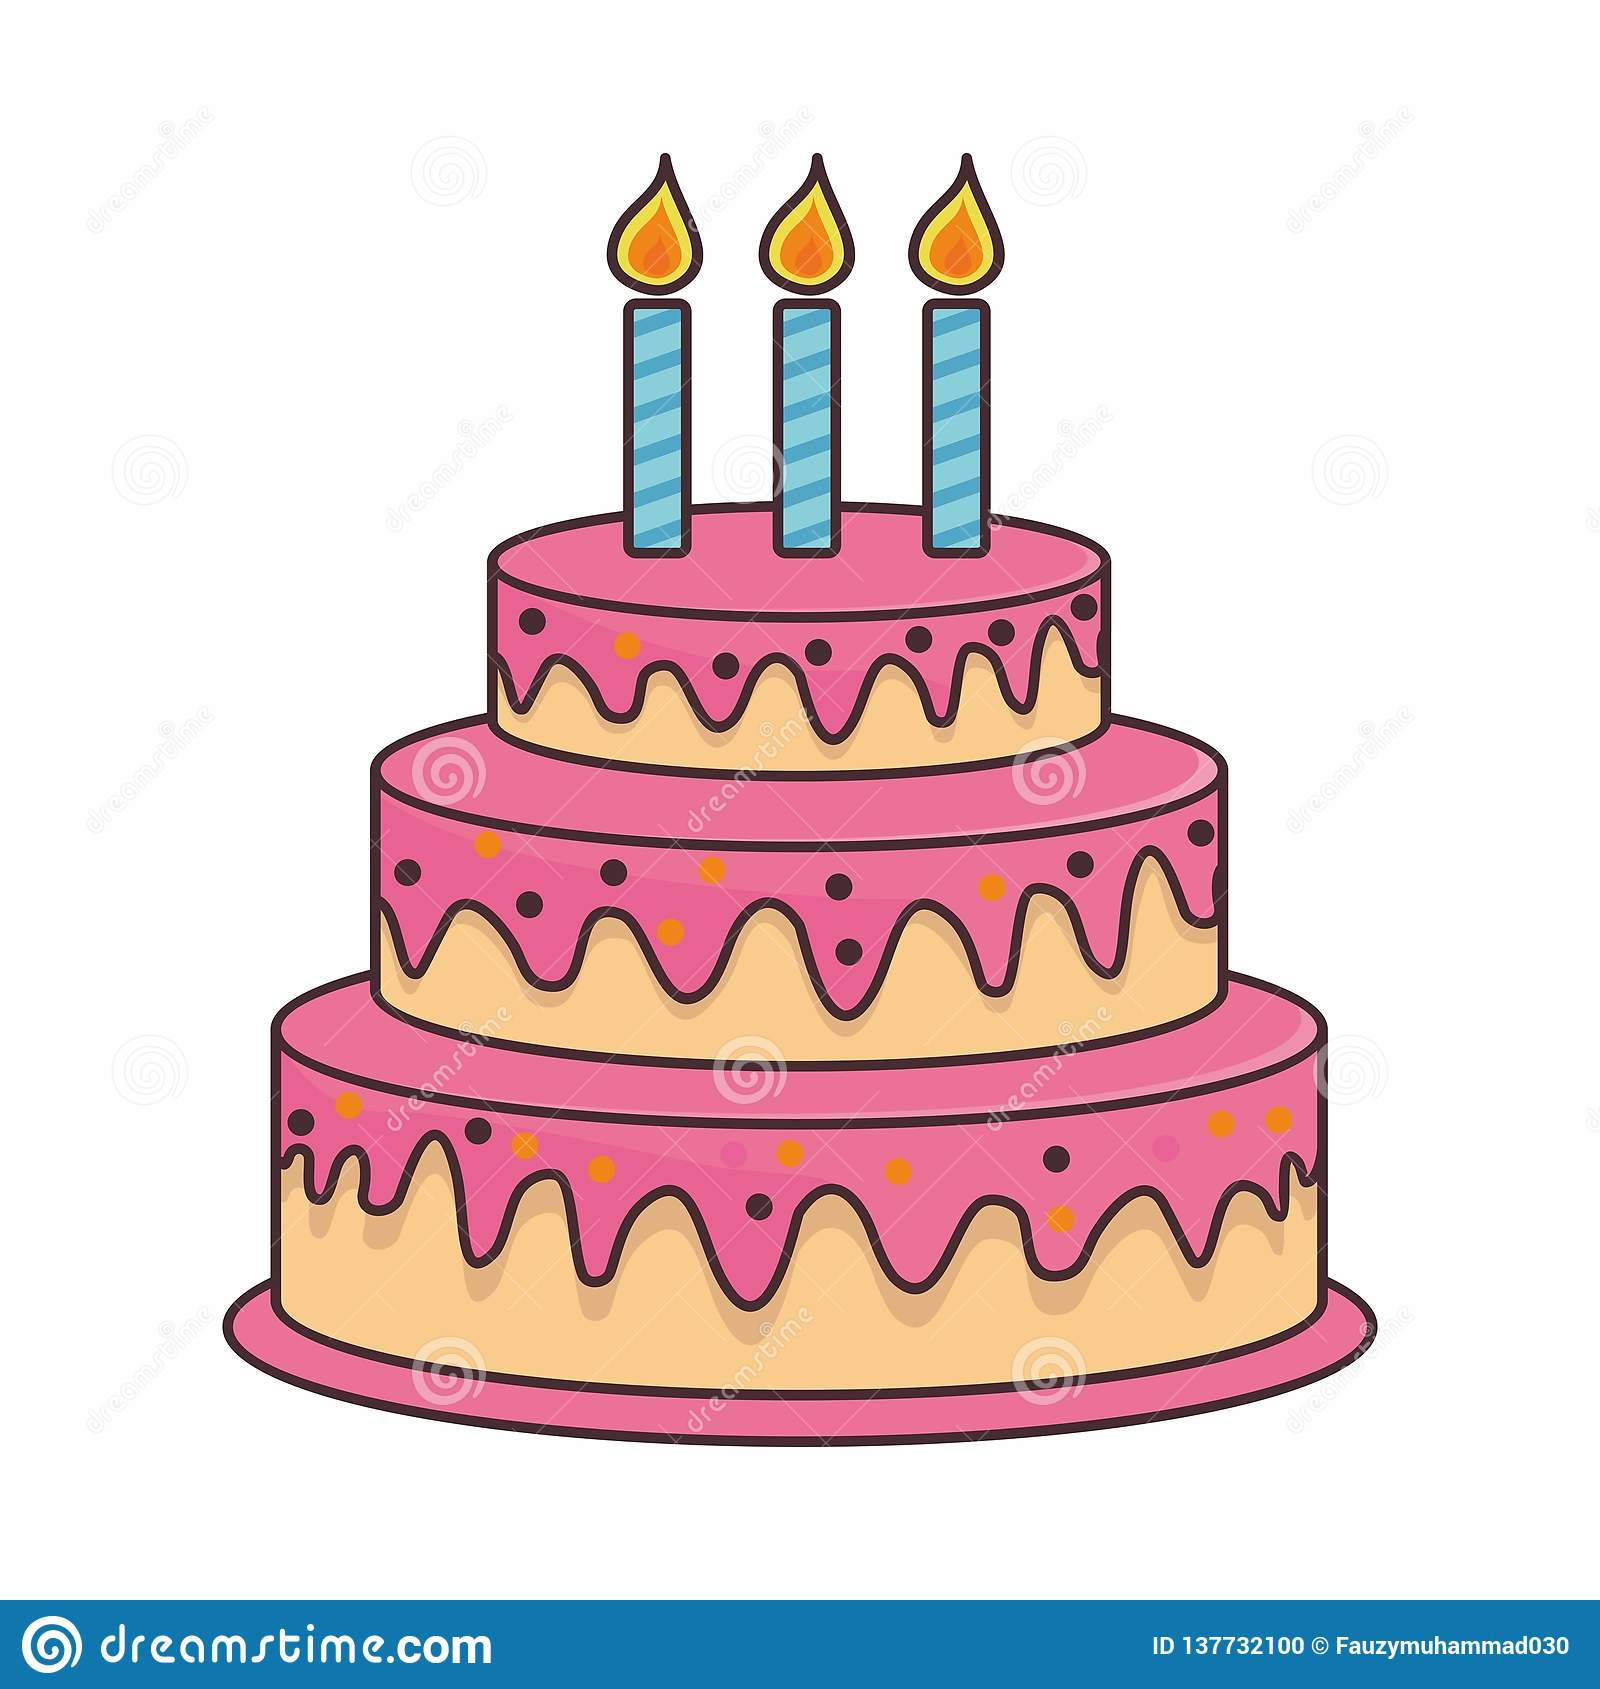 Birthday Cake Cartoon Illustration On Isolated Background Stock Vector Illustration Of Delicious Graphic 137732100